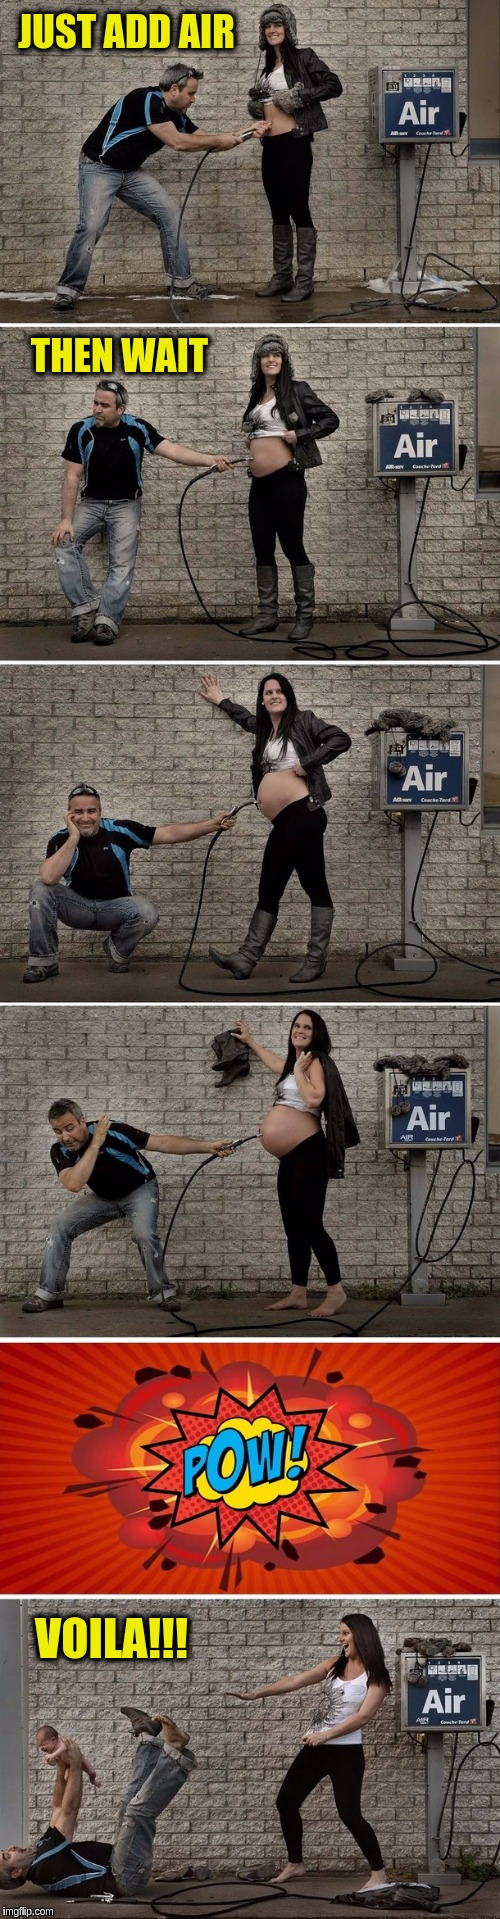 Watch as a Miracle Happens!!! ٩(˘◡˘)۶ | JUST ADD AIR THEN WAIT VOILA!!! | image tagged in memes,funny,miracles,child birth,air pump,babies | made w/ Imgflip meme maker